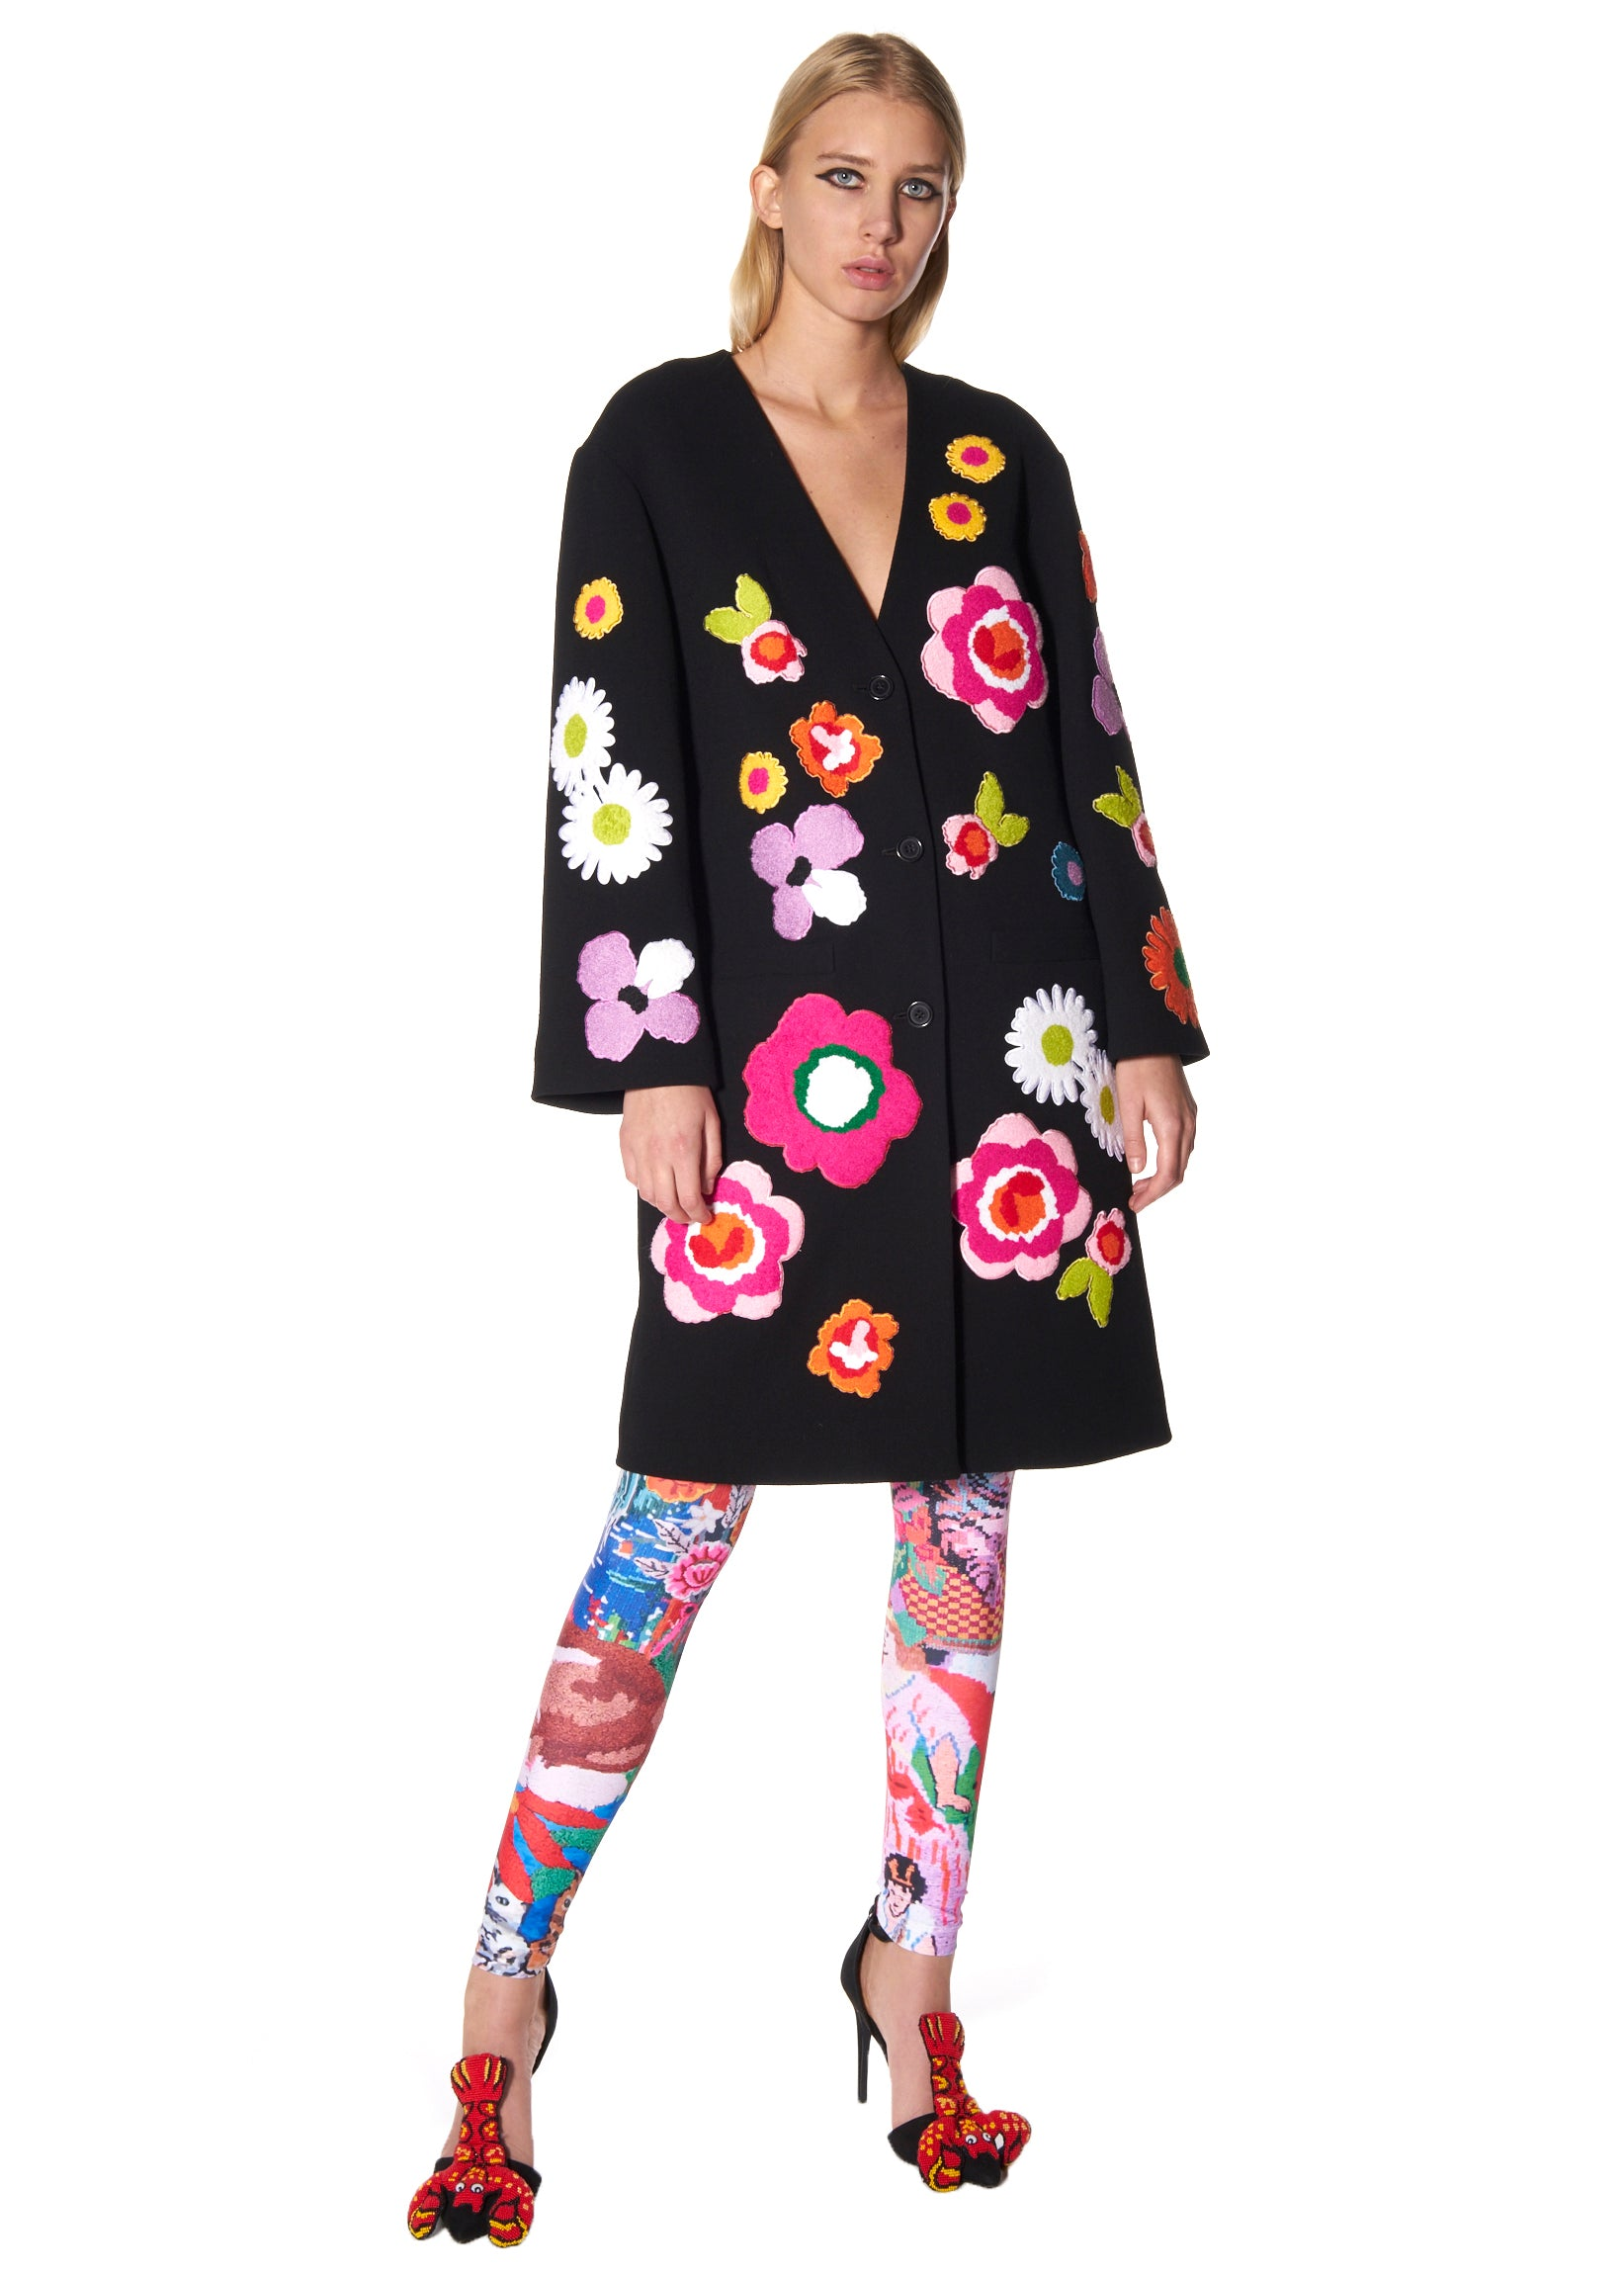 POP FLOWERS COLLARLESS COAT - Women's Jackets & Coats - Libertine